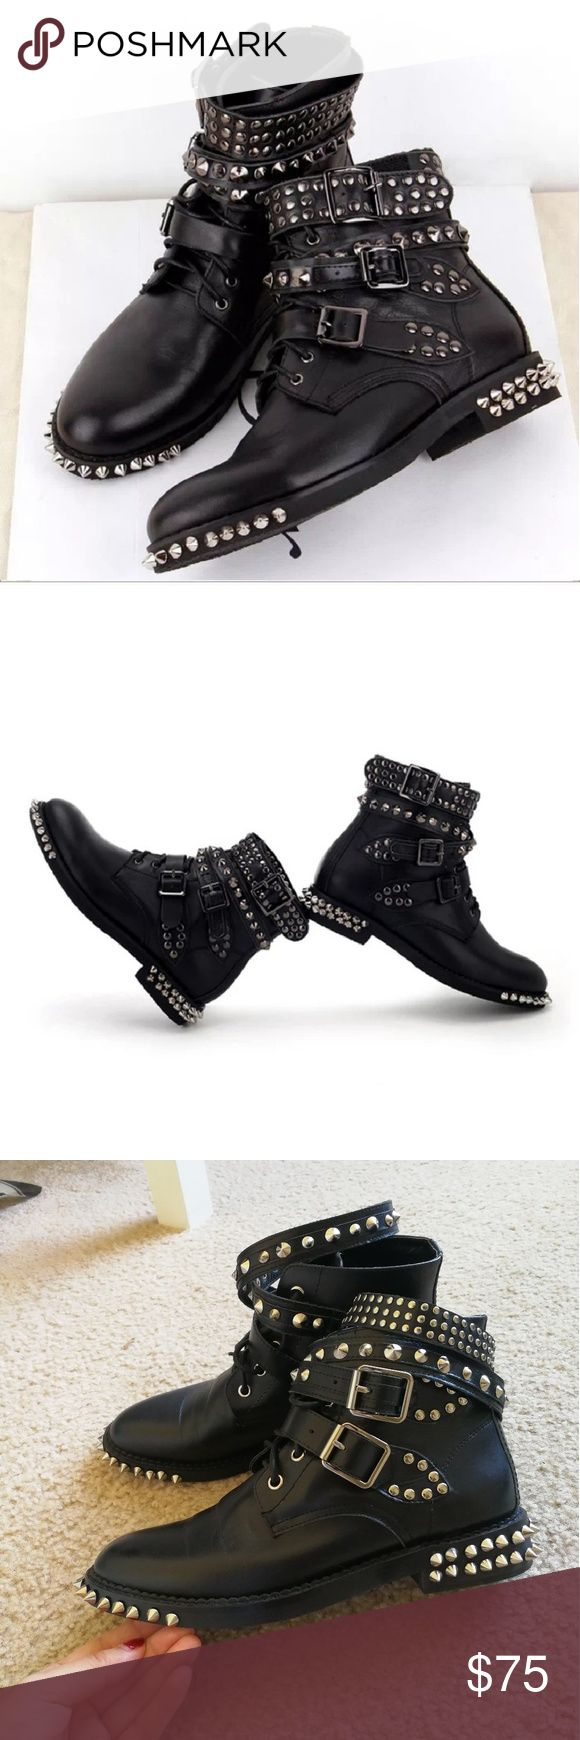 Studded ankle boots in black Size 6.5 Shoes Ankle Boots & Booties